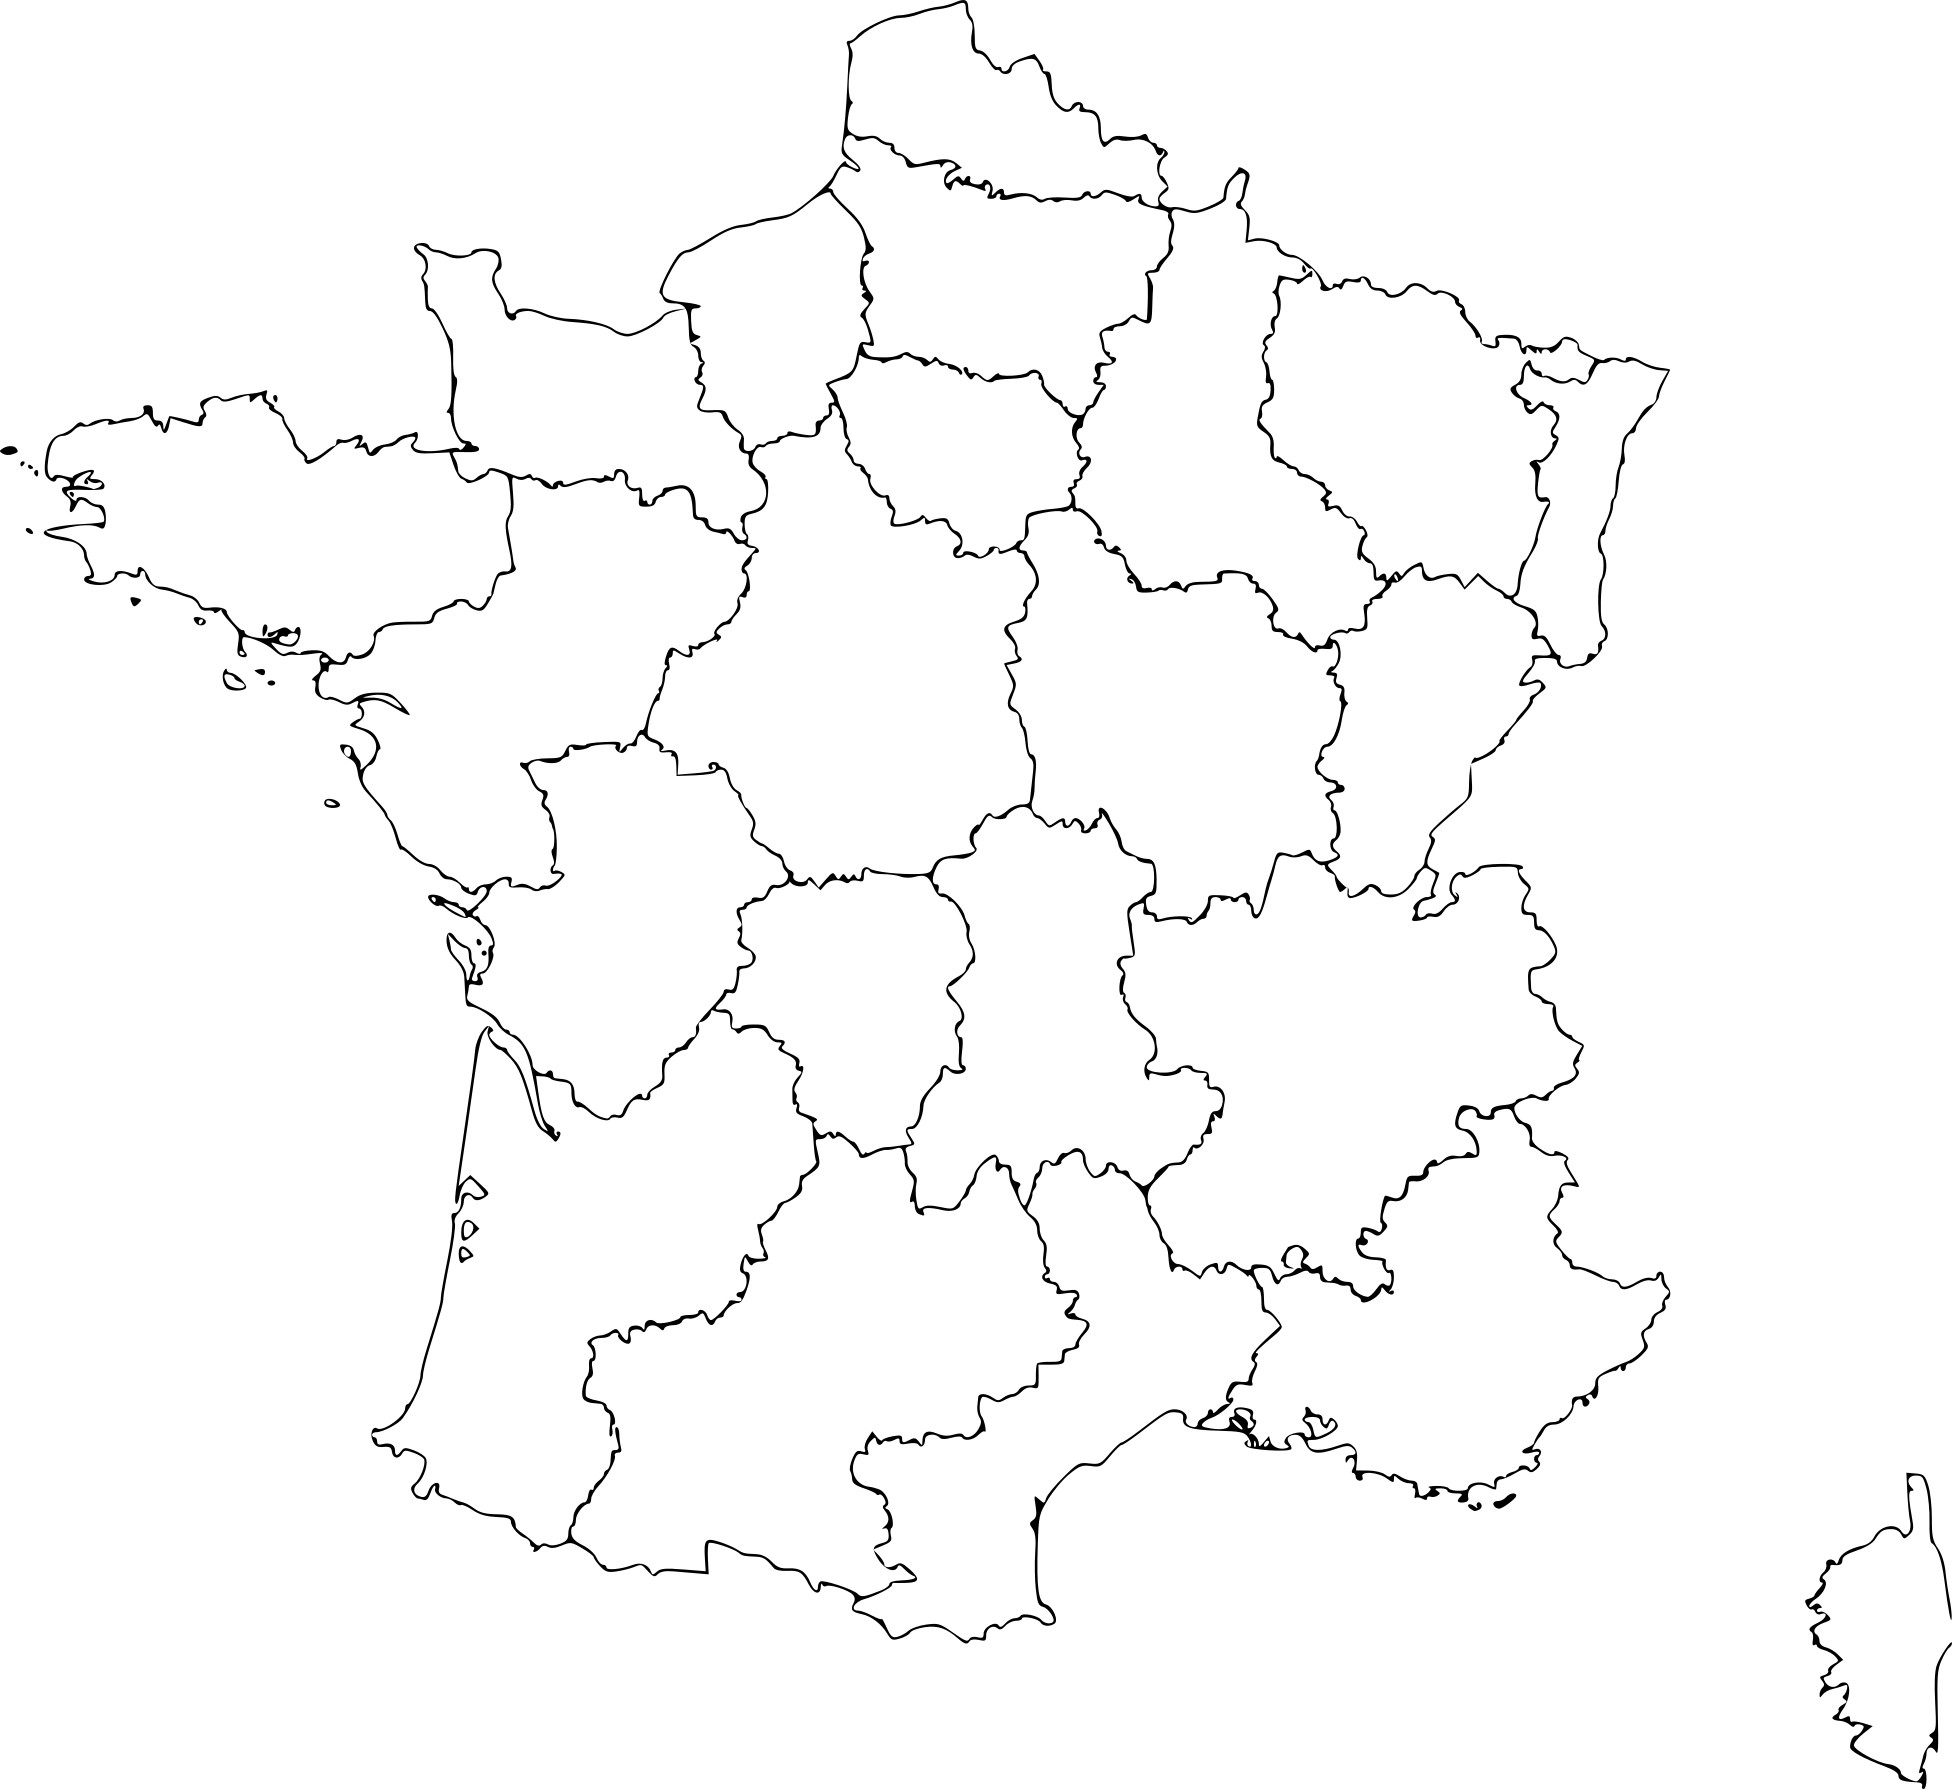 Coloriage Carte De La France À Imprimer Sur Coloriages destiné Imprimer Une Carte De France